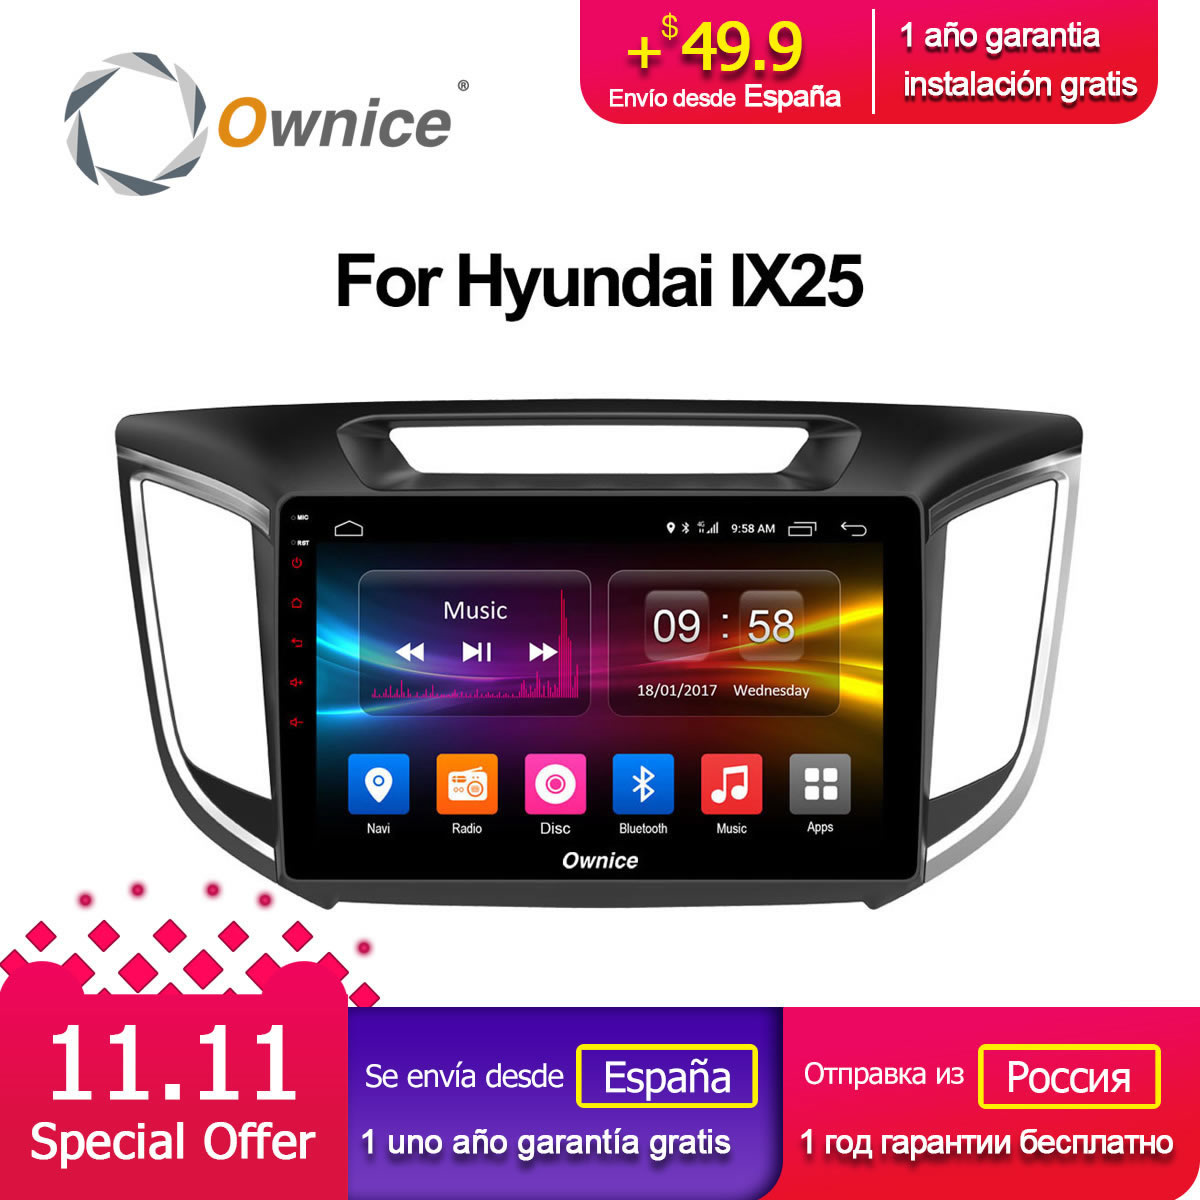 Ownice C500+ G10 10.1 Android 8.1 Octa Core Car Radio DVD GPS for Hyundai iX25 2014 2015 2016 2GB RAM 32GB ROM support 4G LTE